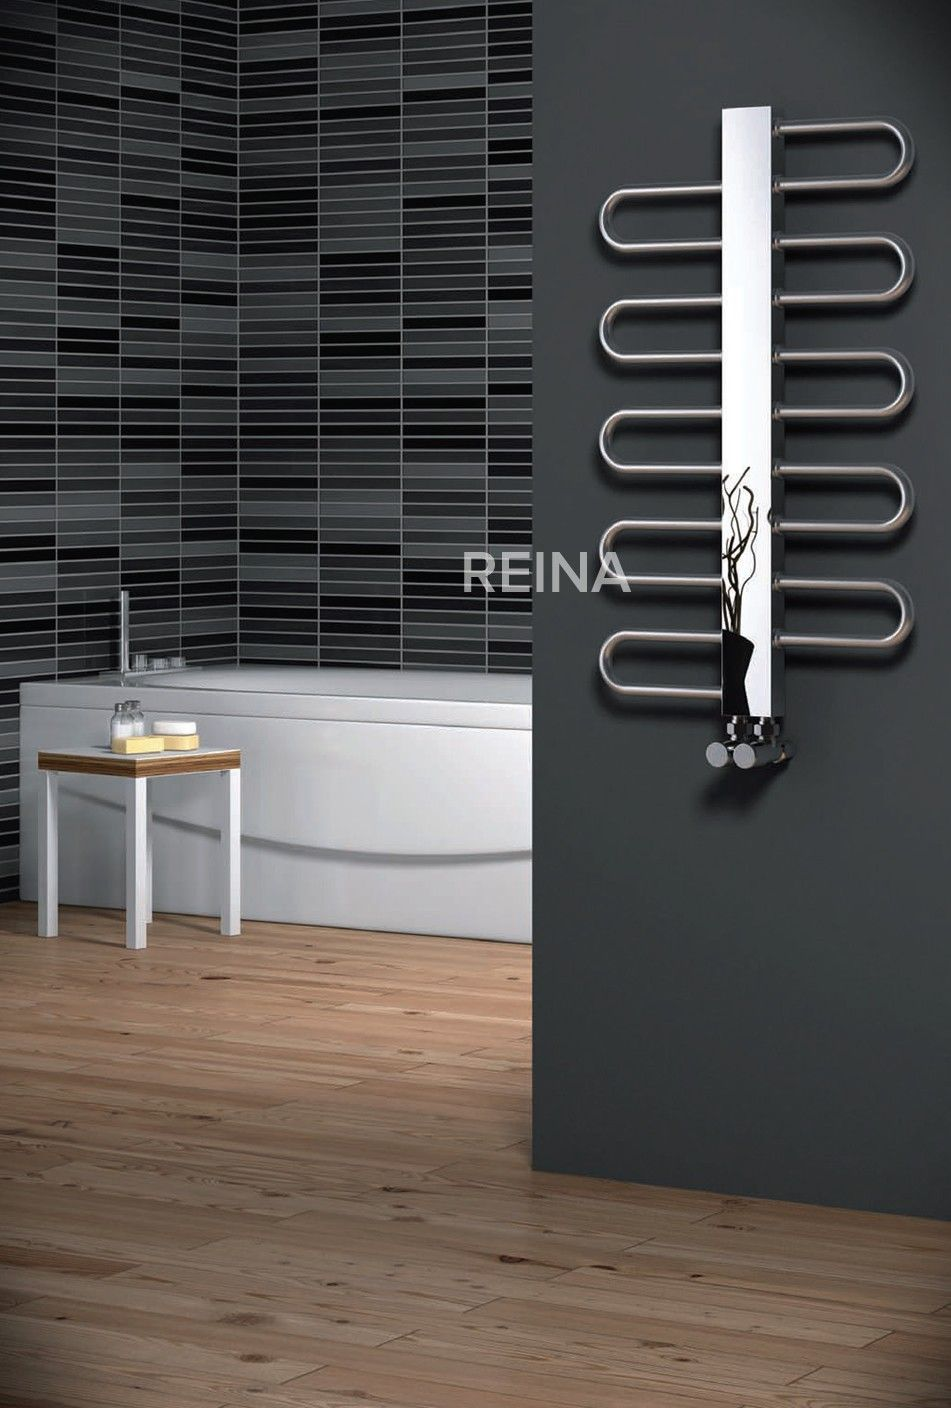 REINA DYNAMIC STAINLESS STEEL HEATED TOWEL RAILS